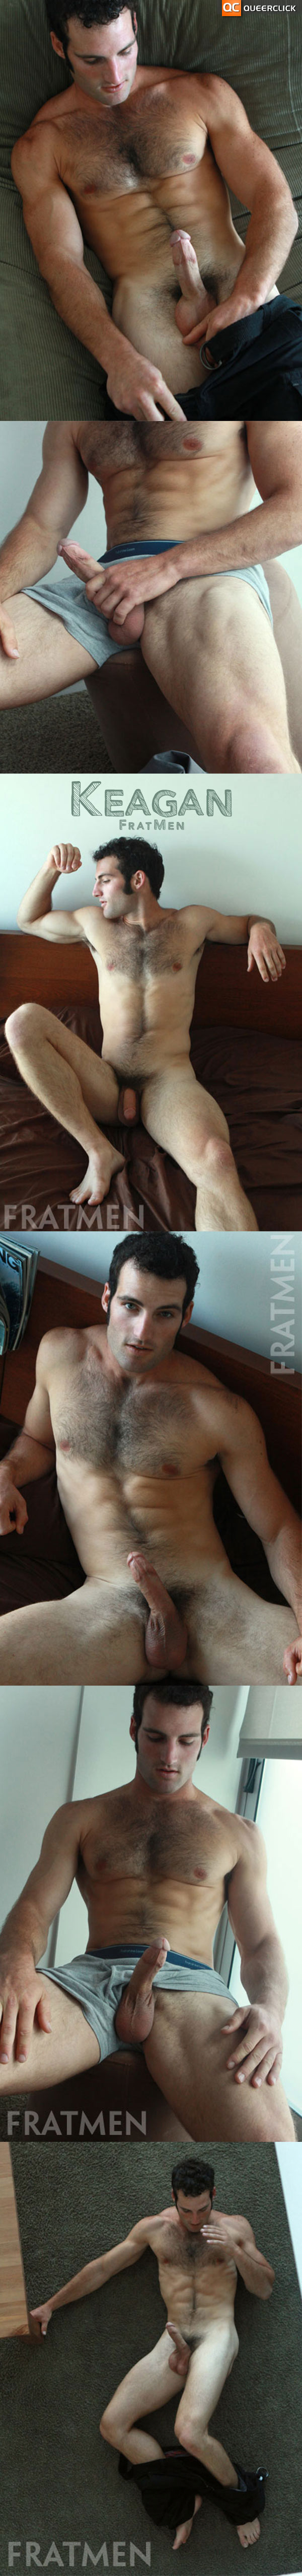 Keagan at Fratmen